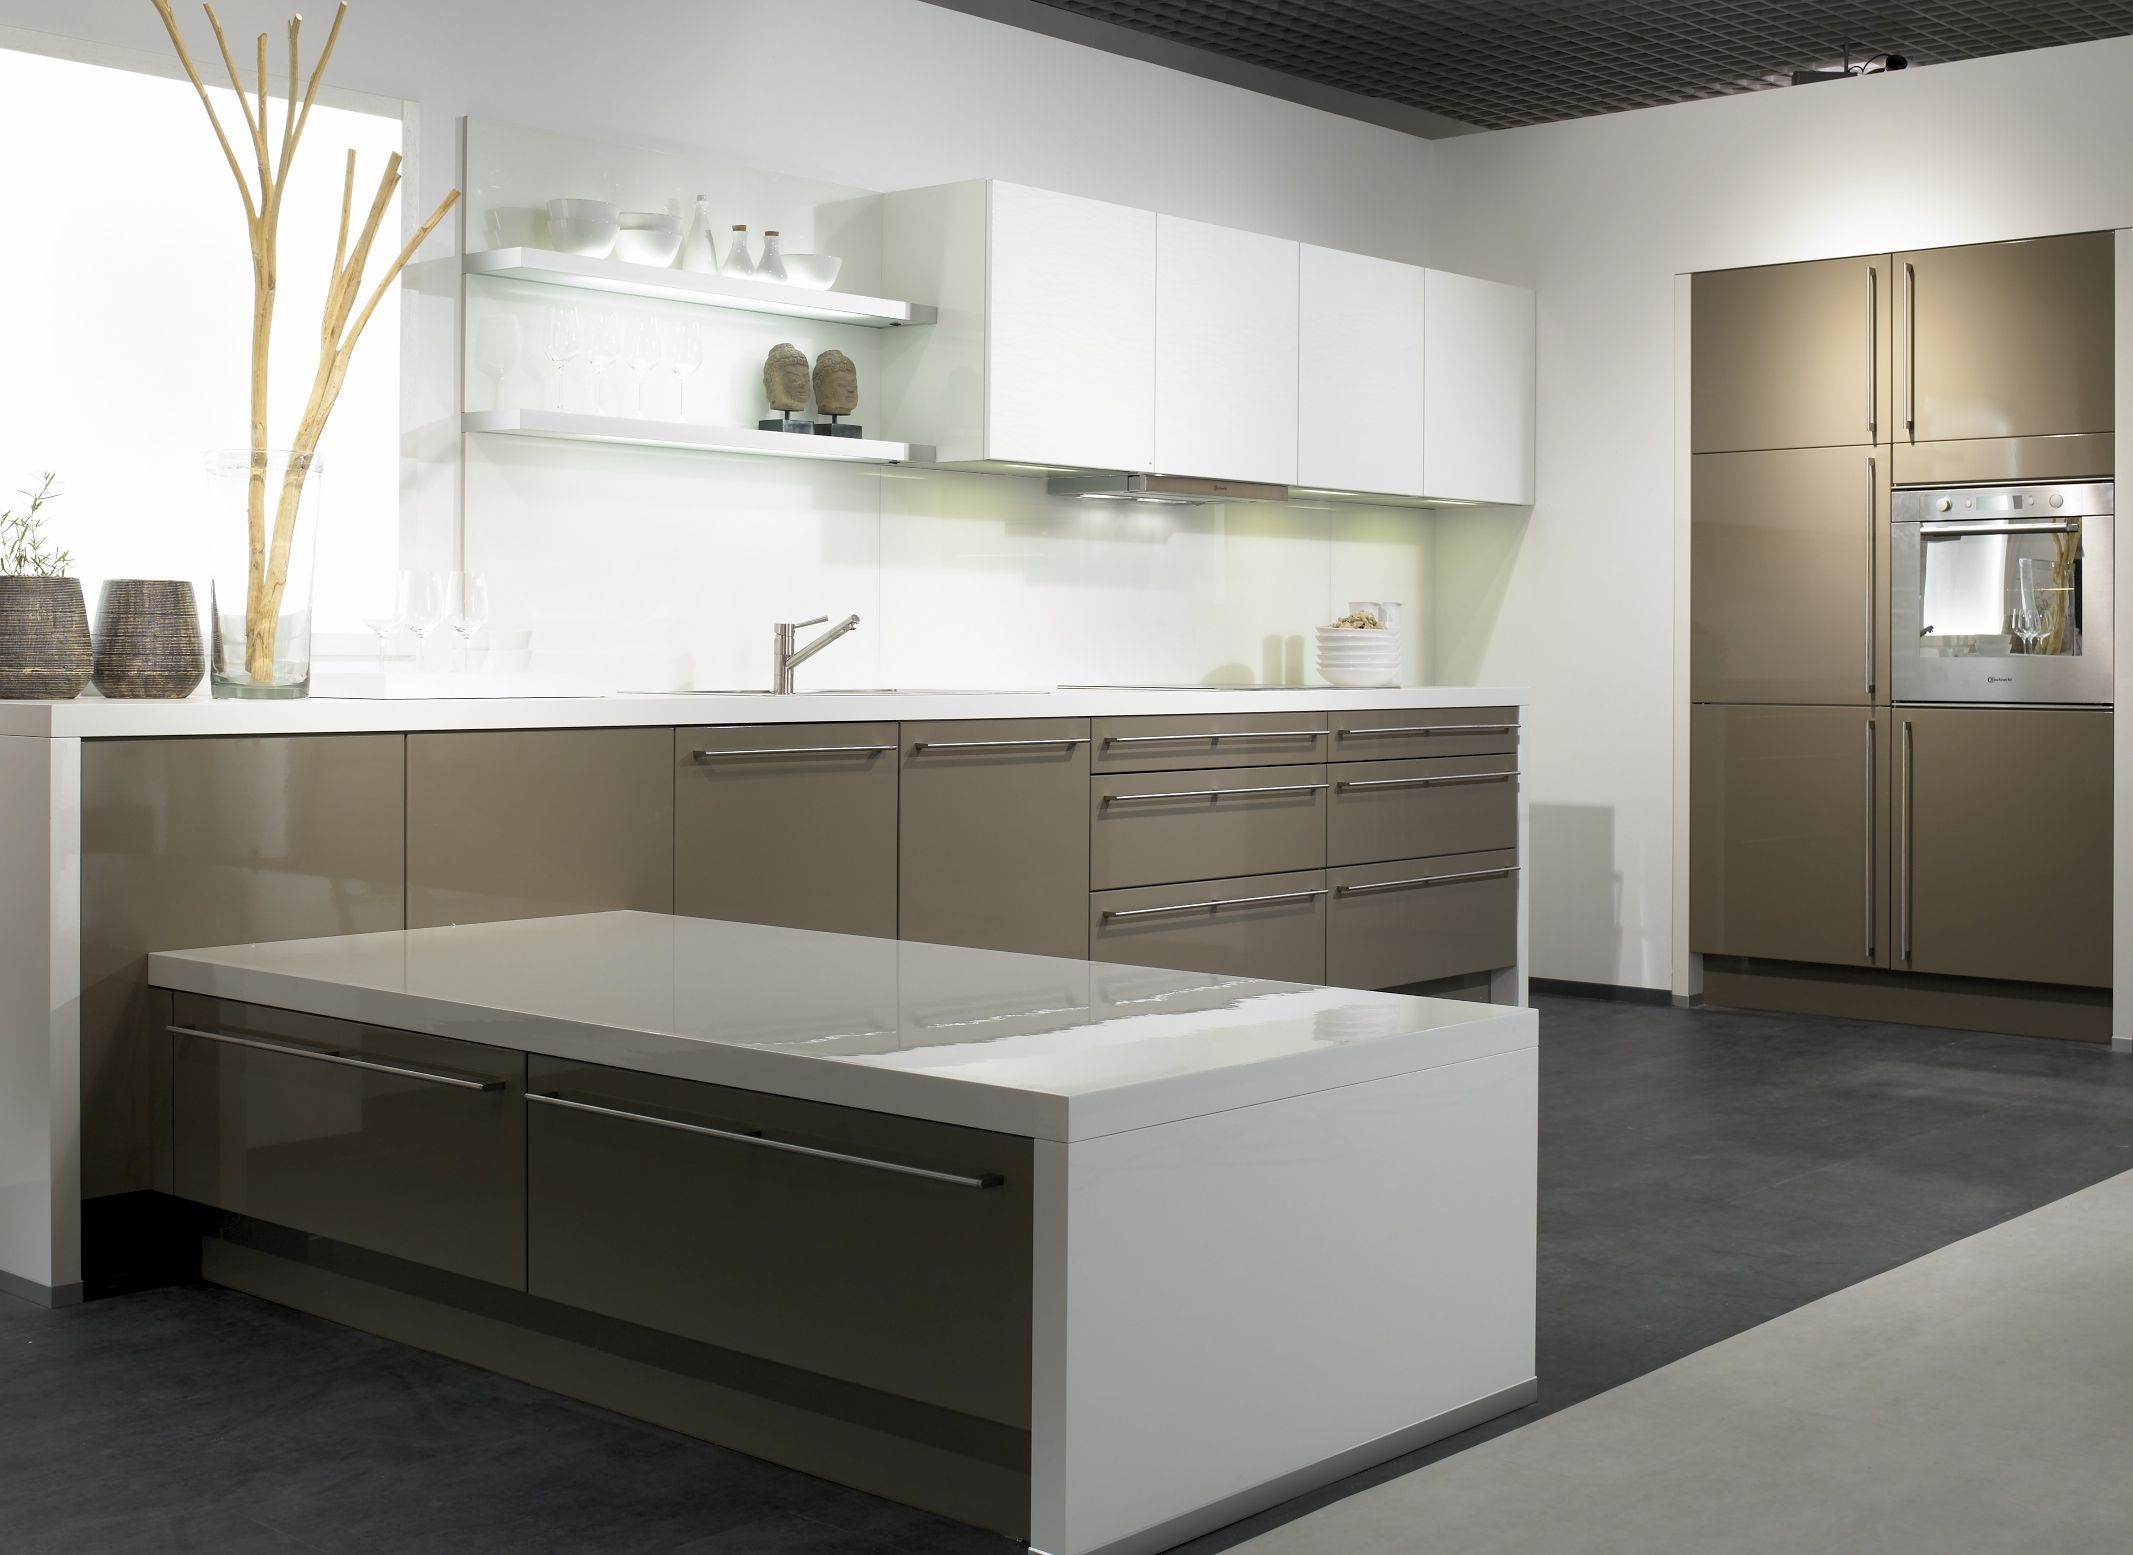 Cocina en blanco y girs beige the singular kitchen for Singular kitchen